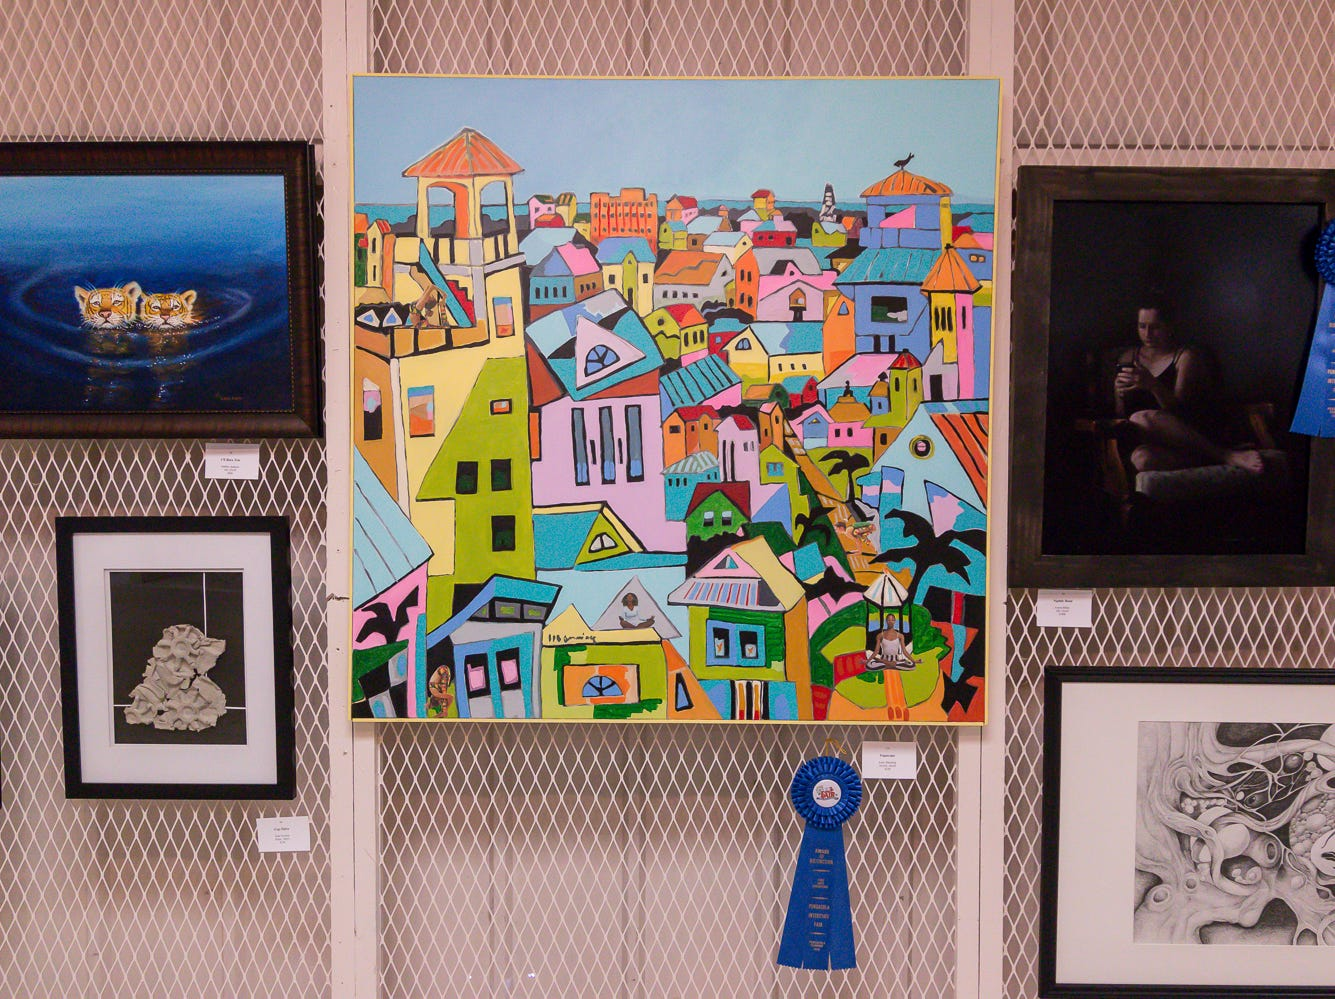 Some of the over 100 pieces of art on display in the Fine Arts Exhibition at the Pensacola Interstate Fair on Wednesday, October 17, 2018.